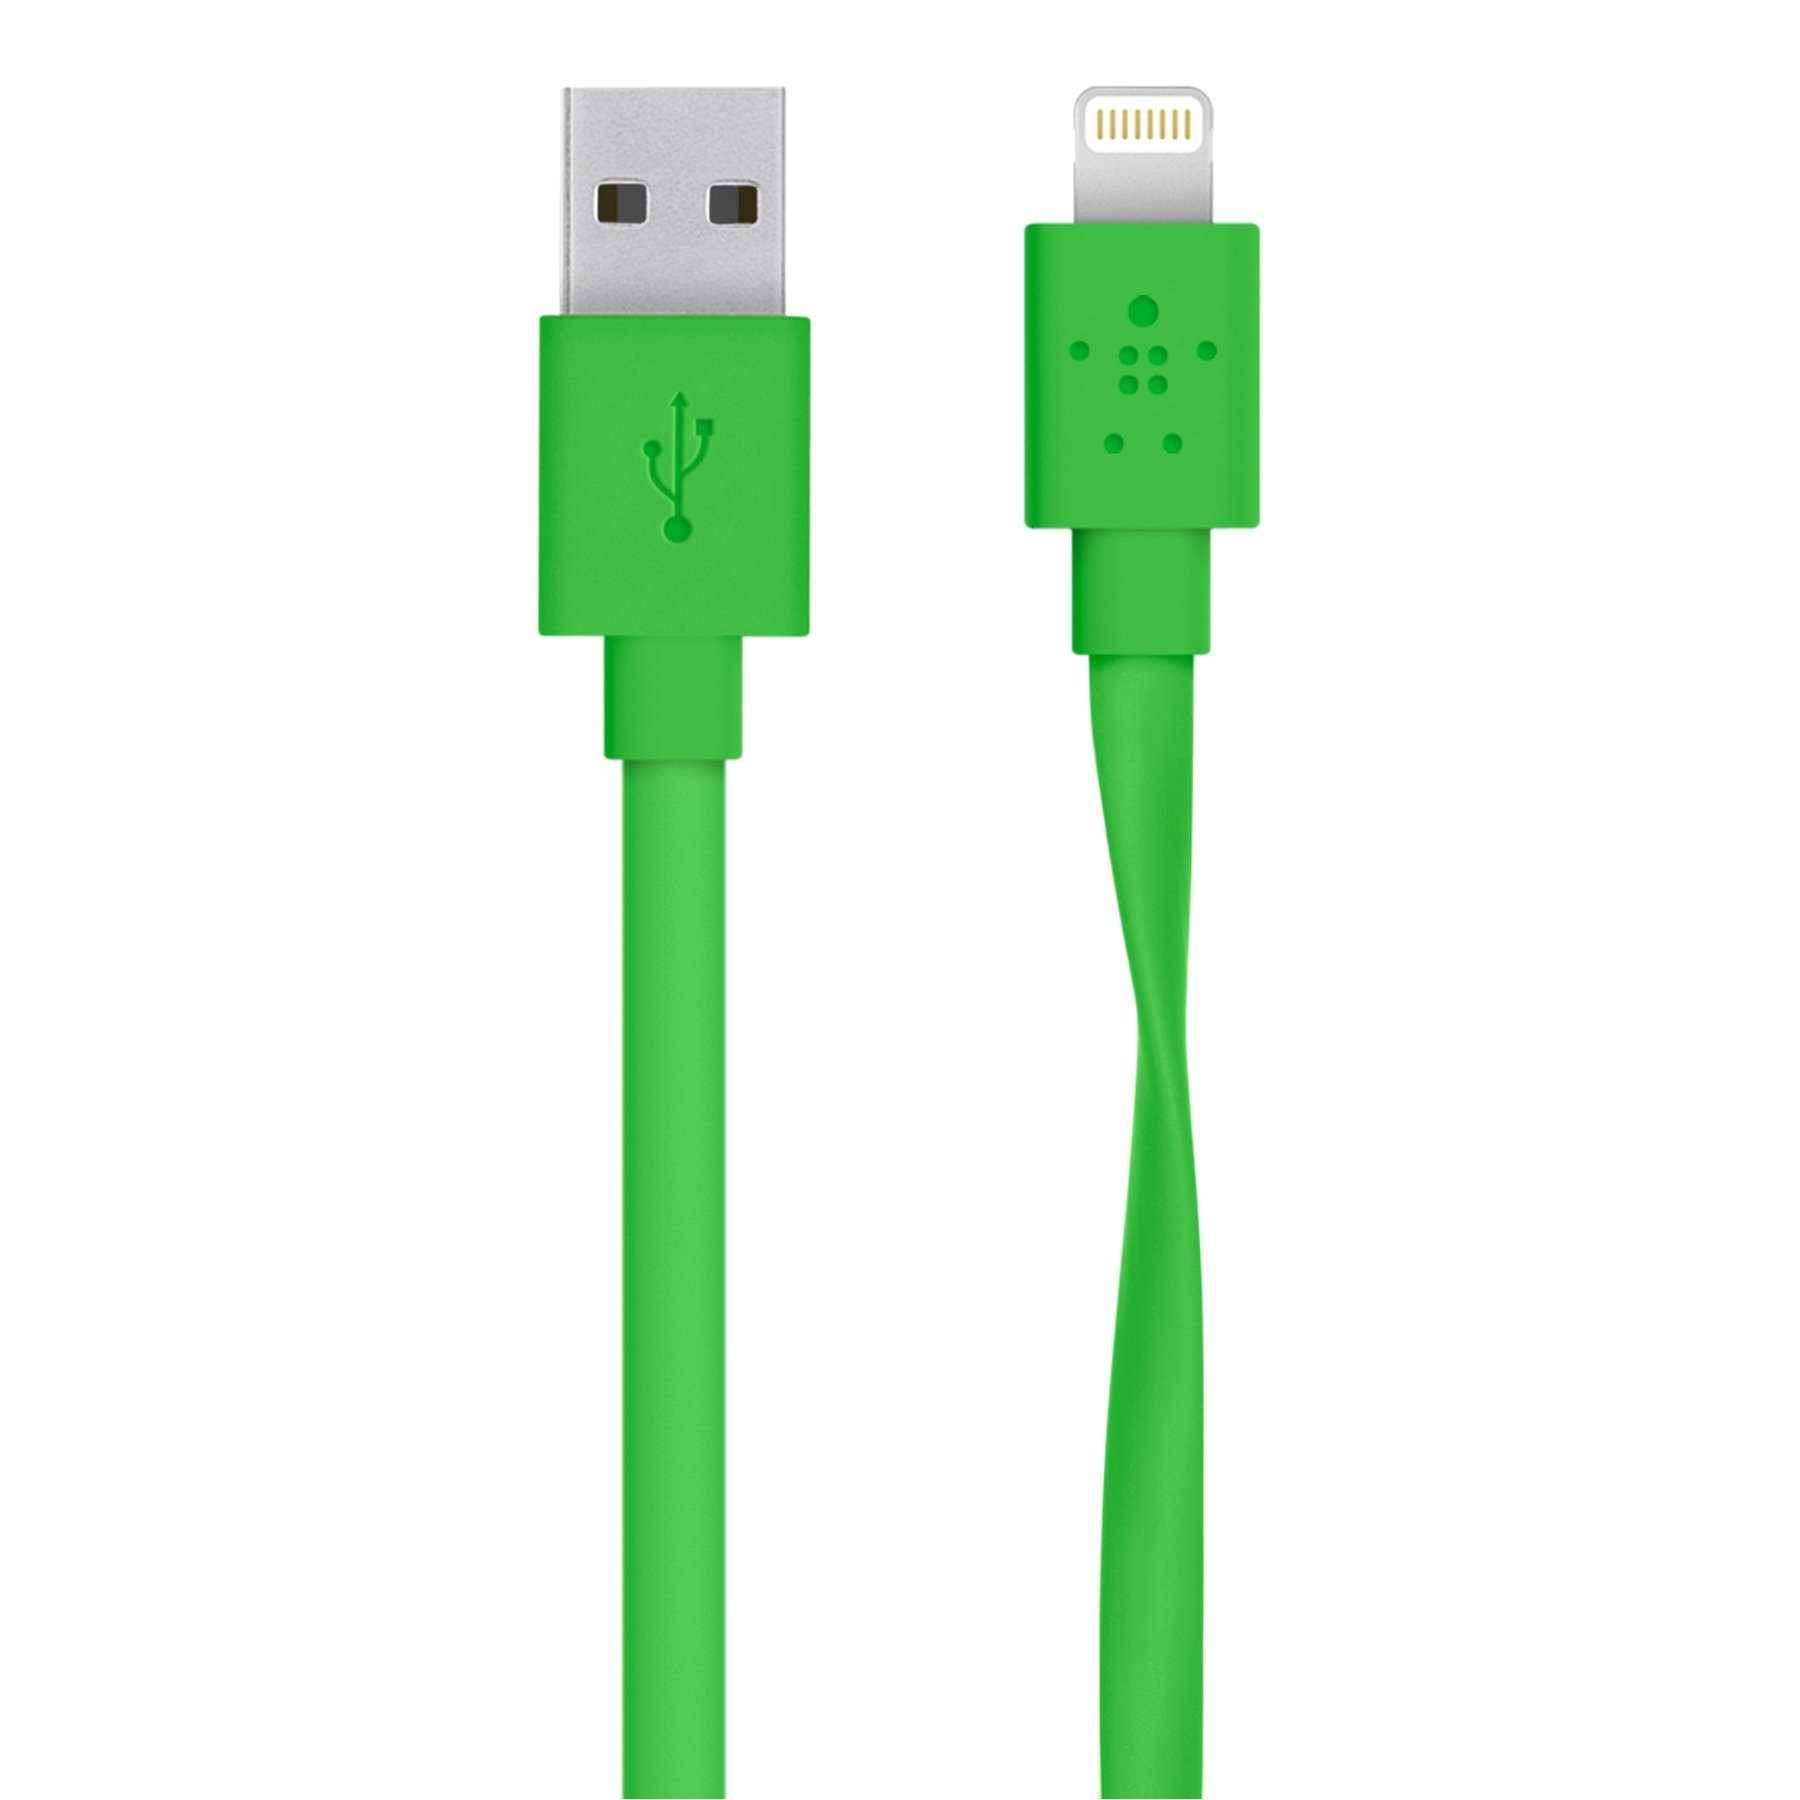 Belkin F8J148BT04-GRN Flat Lightning to USB Cable iPad/iPhone/iPod Charging, Green